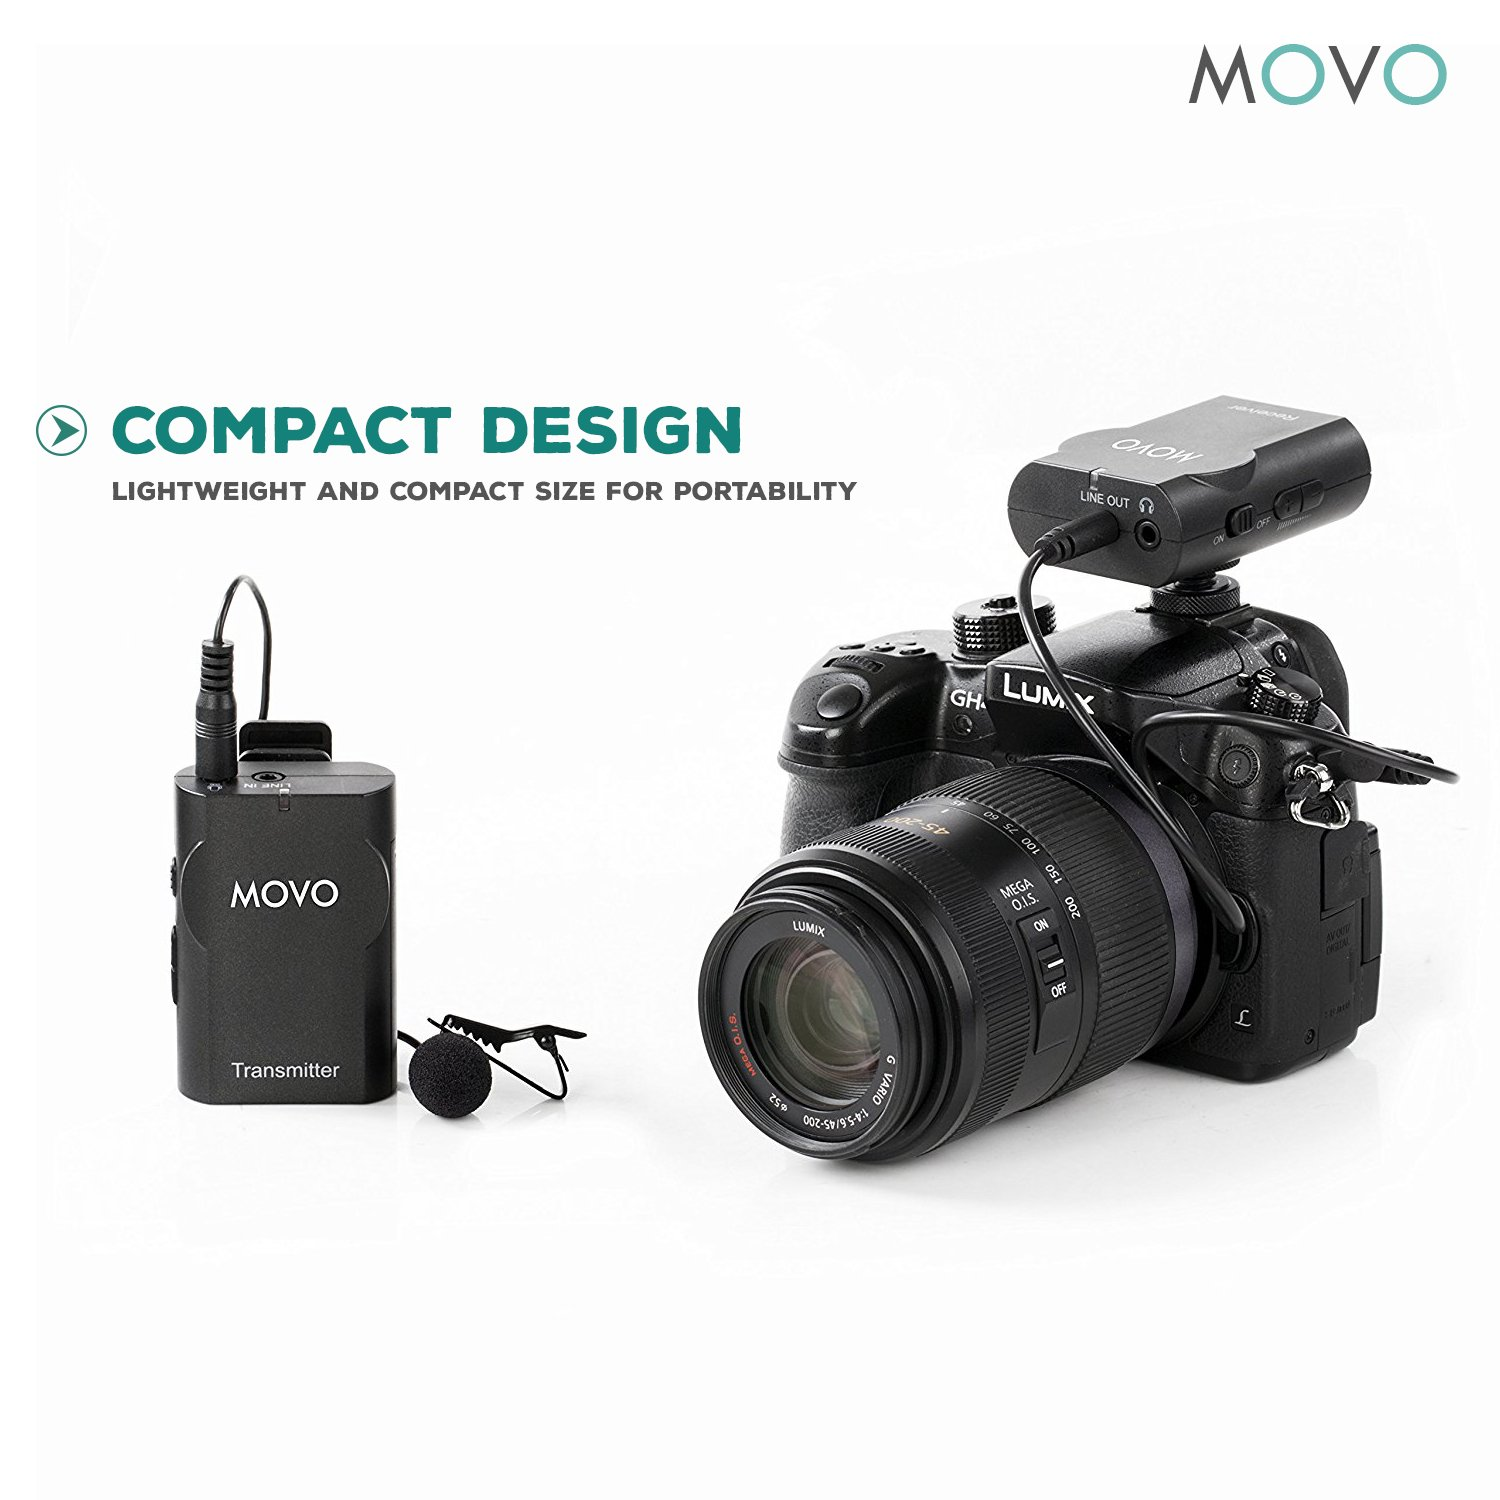 Movo WMIC10 2.4GHz Wireless Lavalier Microphone System for DSLR Cameras, iPhone/iPad/Android Smartphones, Camcorders (50-foot Transmission Range) by Movo (Image #3)